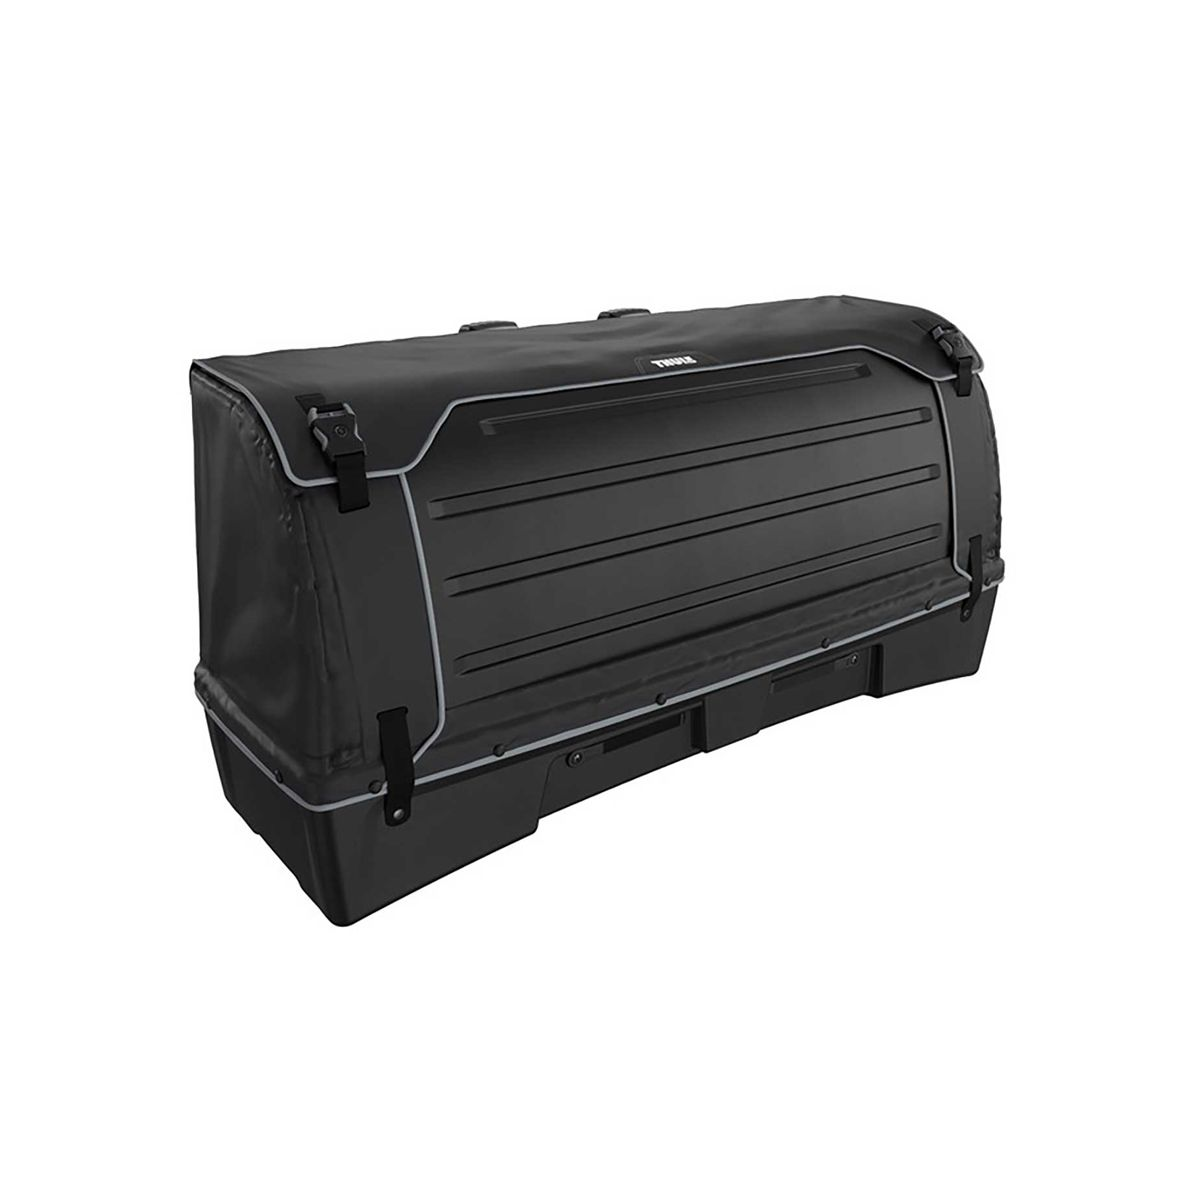 BackSpace XT cargo box